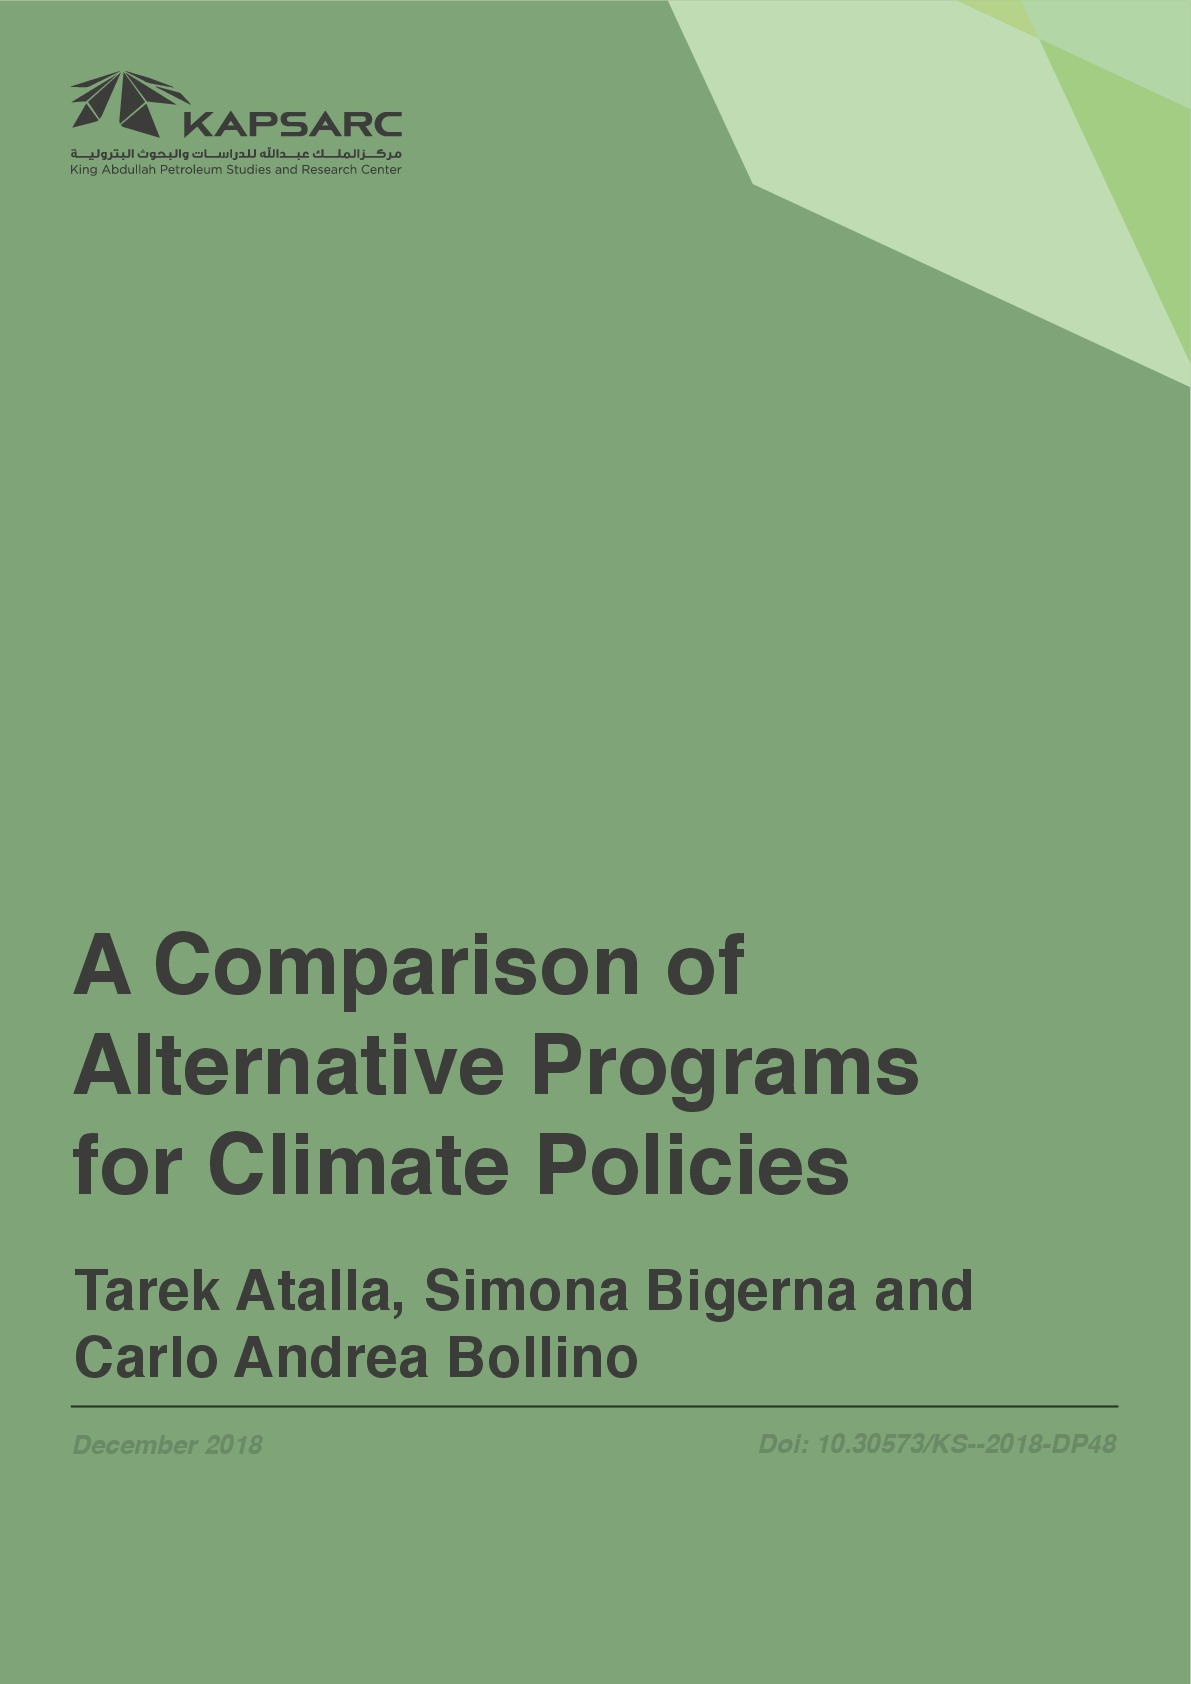 A Comparison of Alternative Programs for Climate Policies